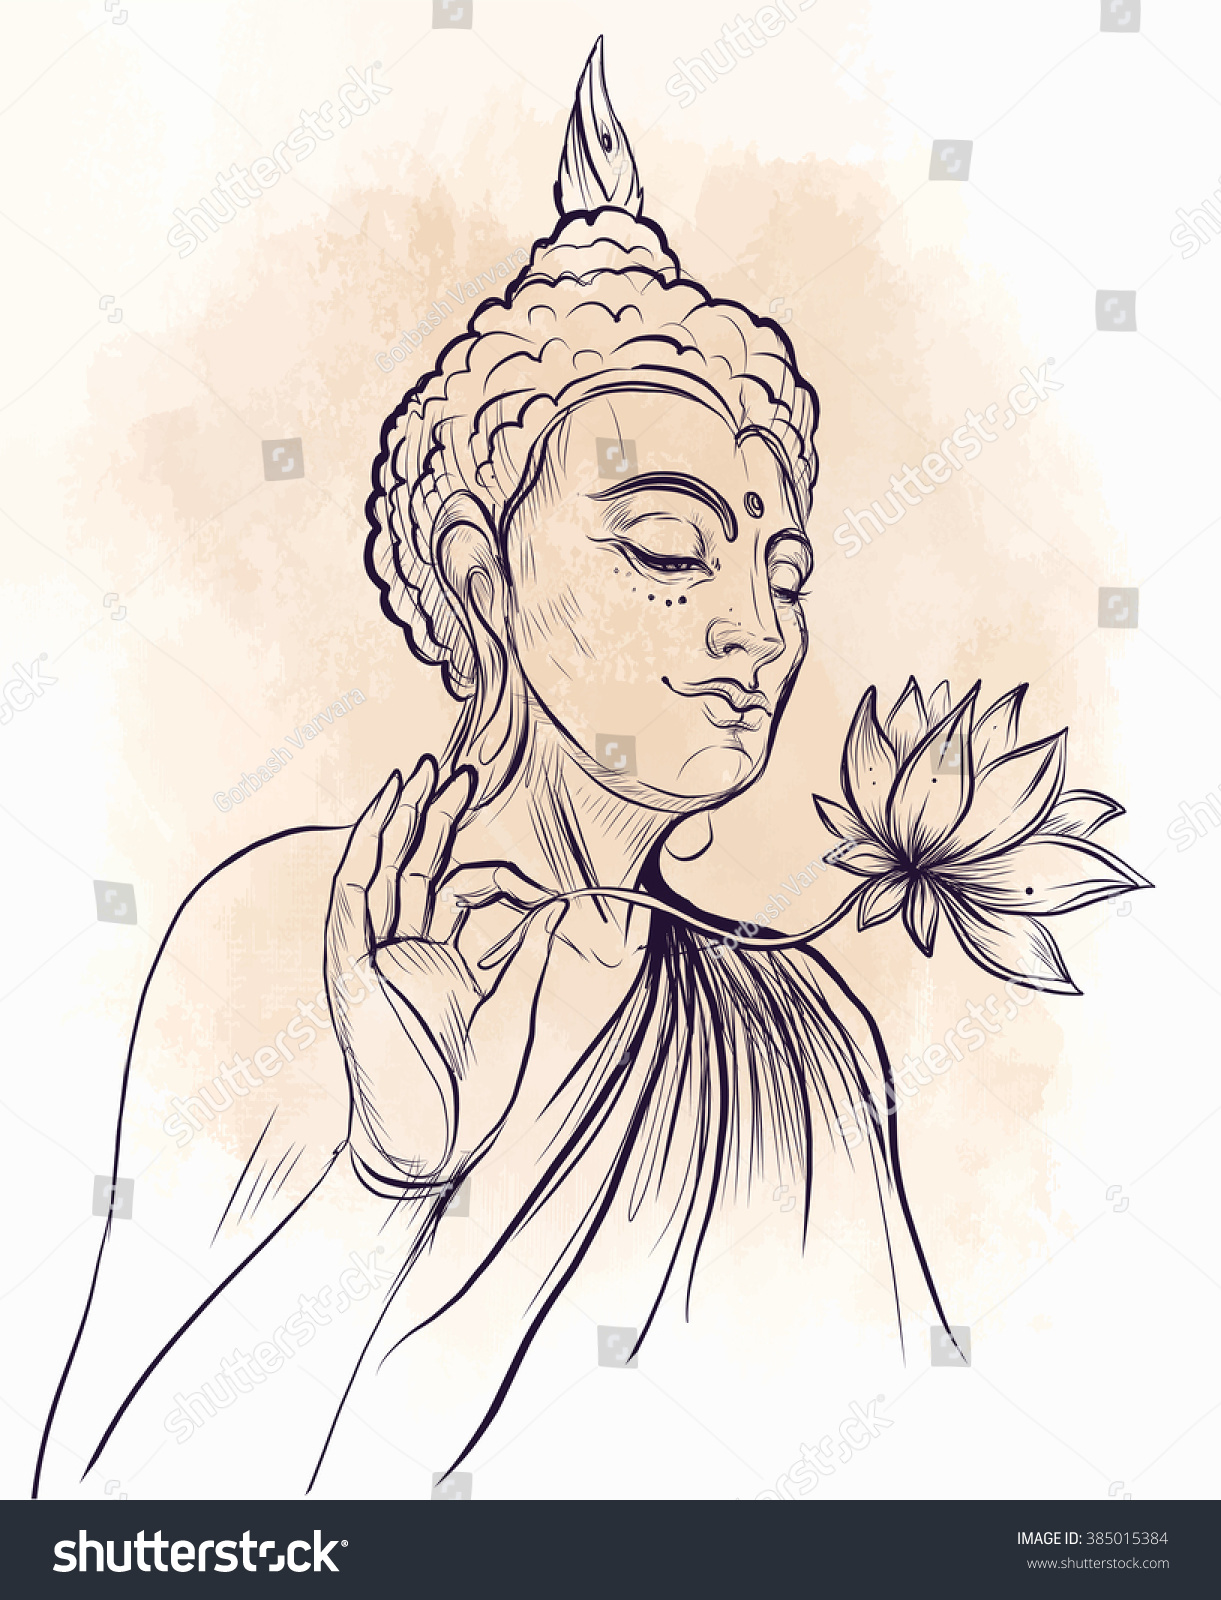 Buddha holding lotus flower vector illustration stock vector buddha holding lotus flower vector illustration over beige retro background sketchy style hand izmirmasajfo